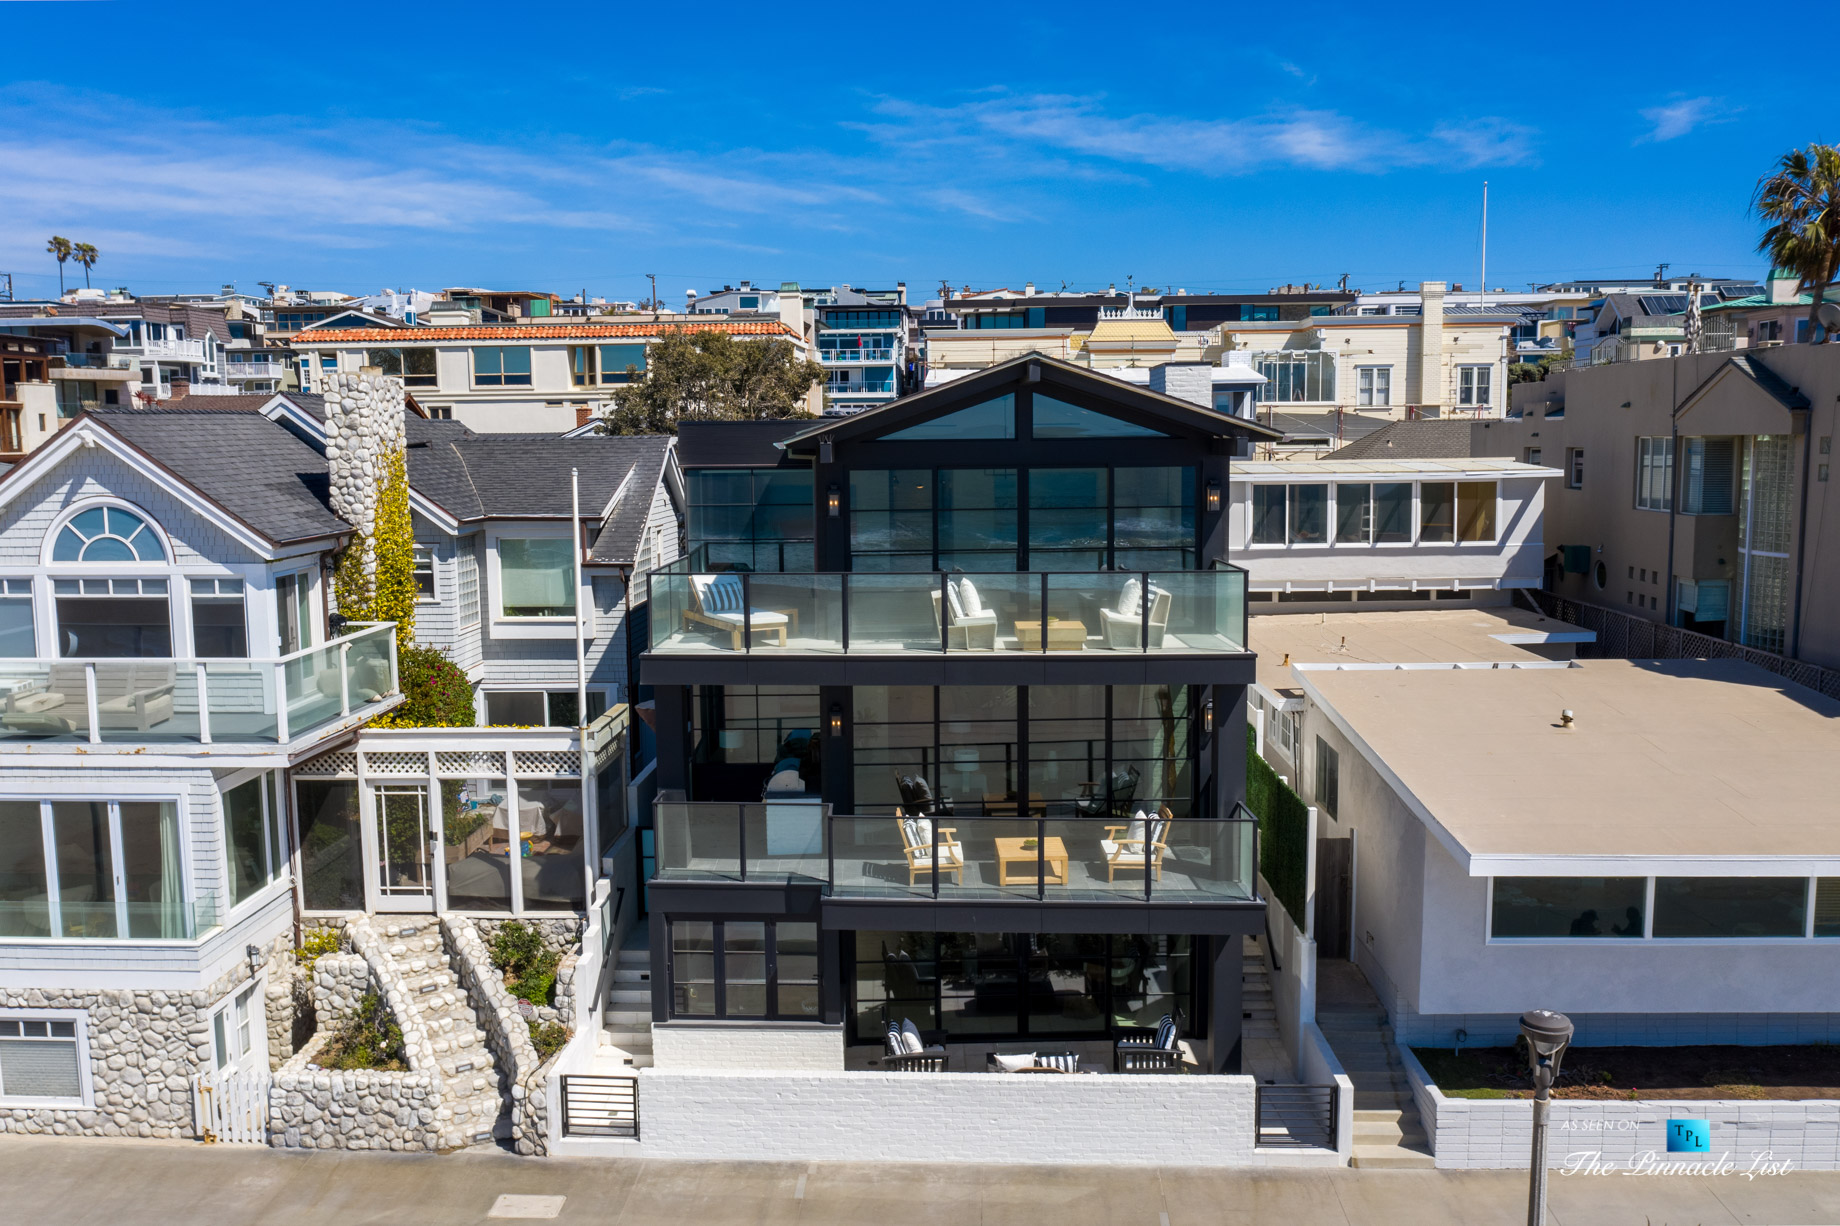 508 The Strand, Manhattan Beach, CA, USA - Exterior Front Balconies - Luxury Real Estate - Oceanfront Home